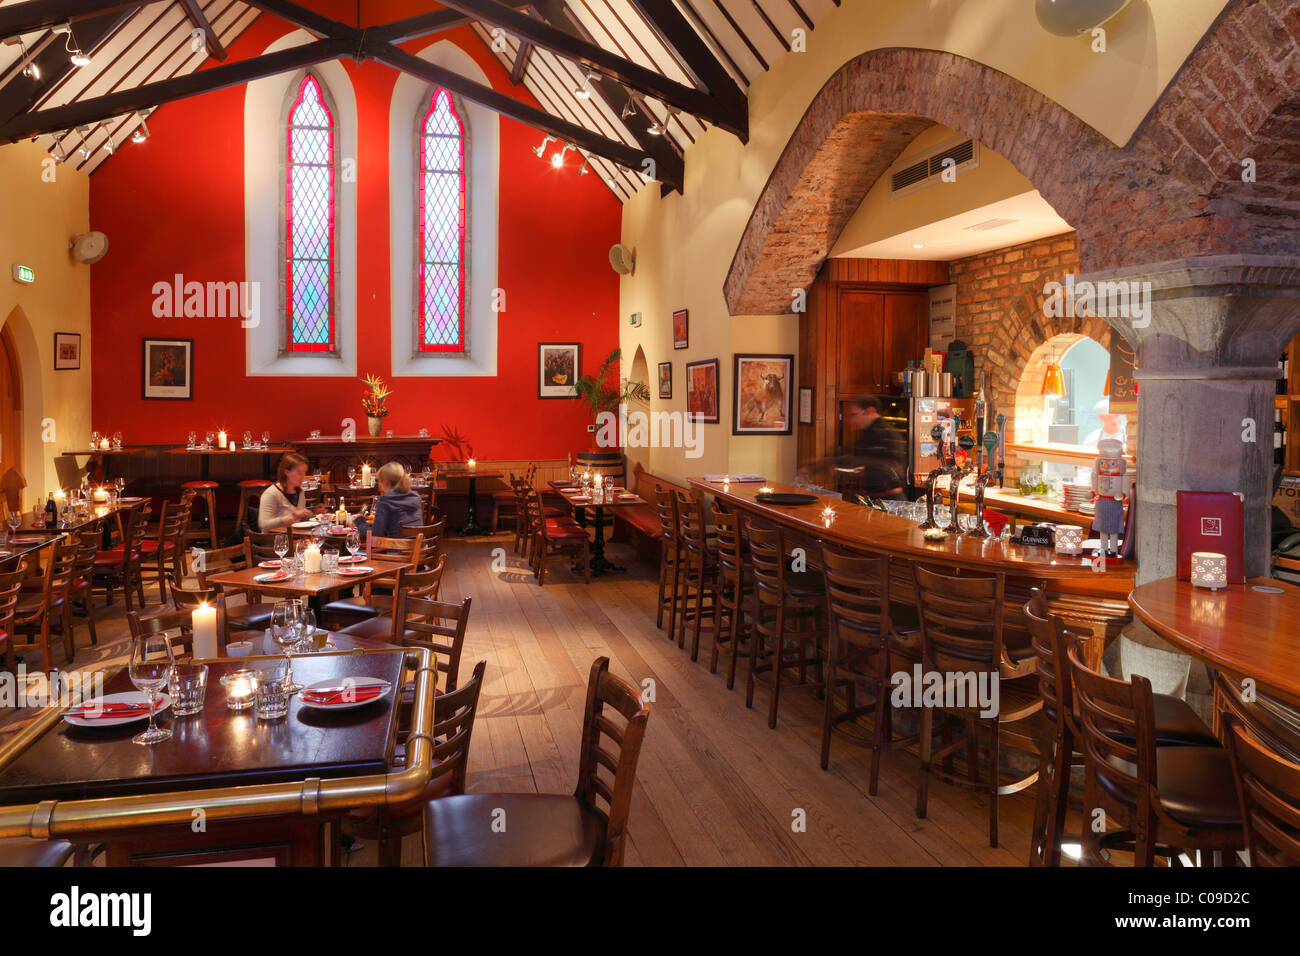 Sol y Sombra restaurant in a former church, Killorglin, Ring of Kerry, County Kerry, Ireland, British Isles, Europe - Stock Image